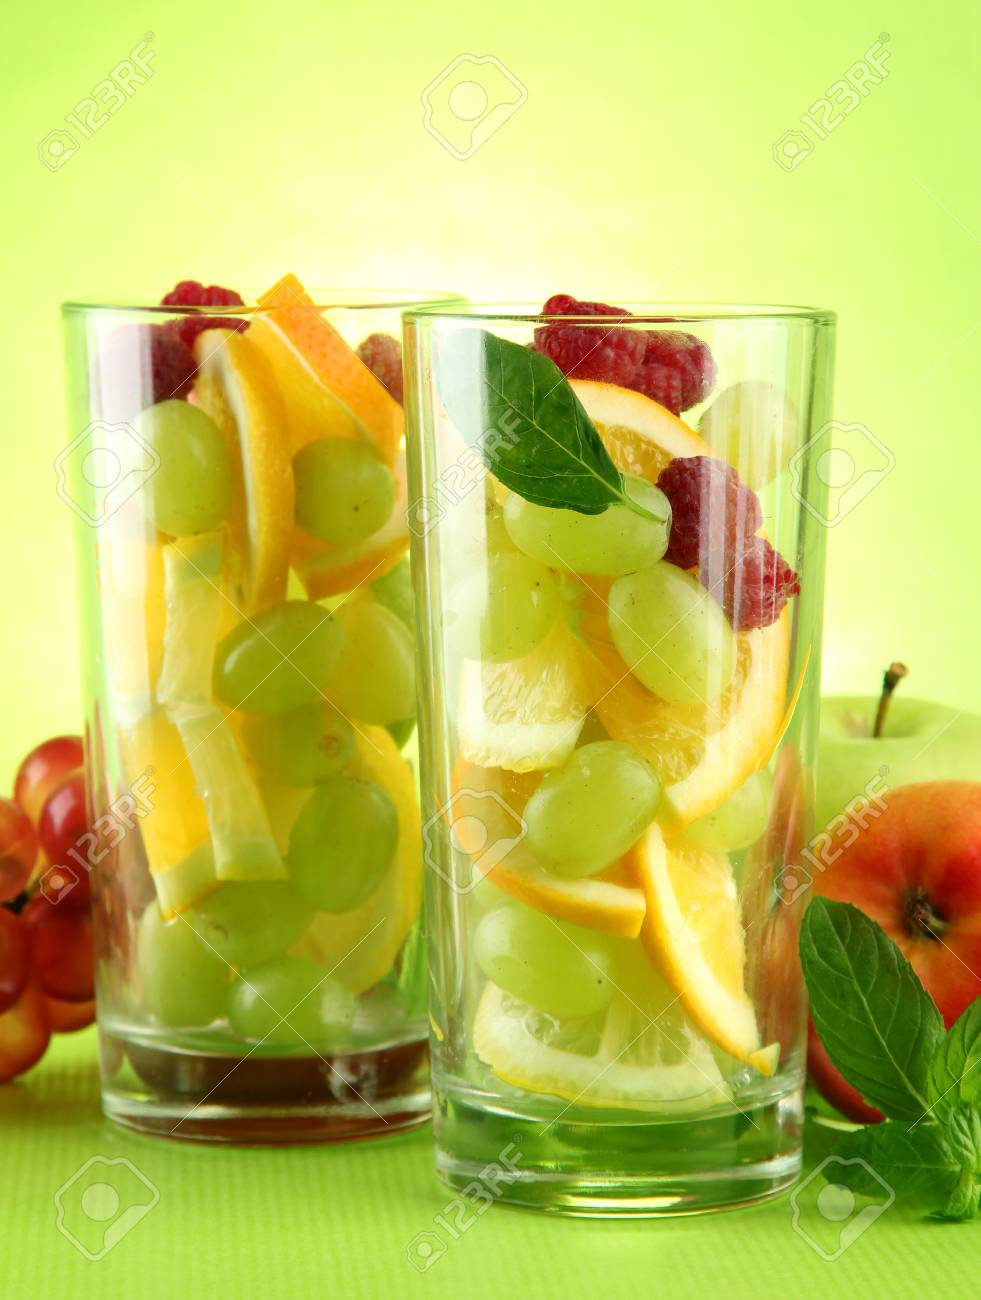 transparent glasses with citrus fruits, on grren background Stock Photo - 15643427